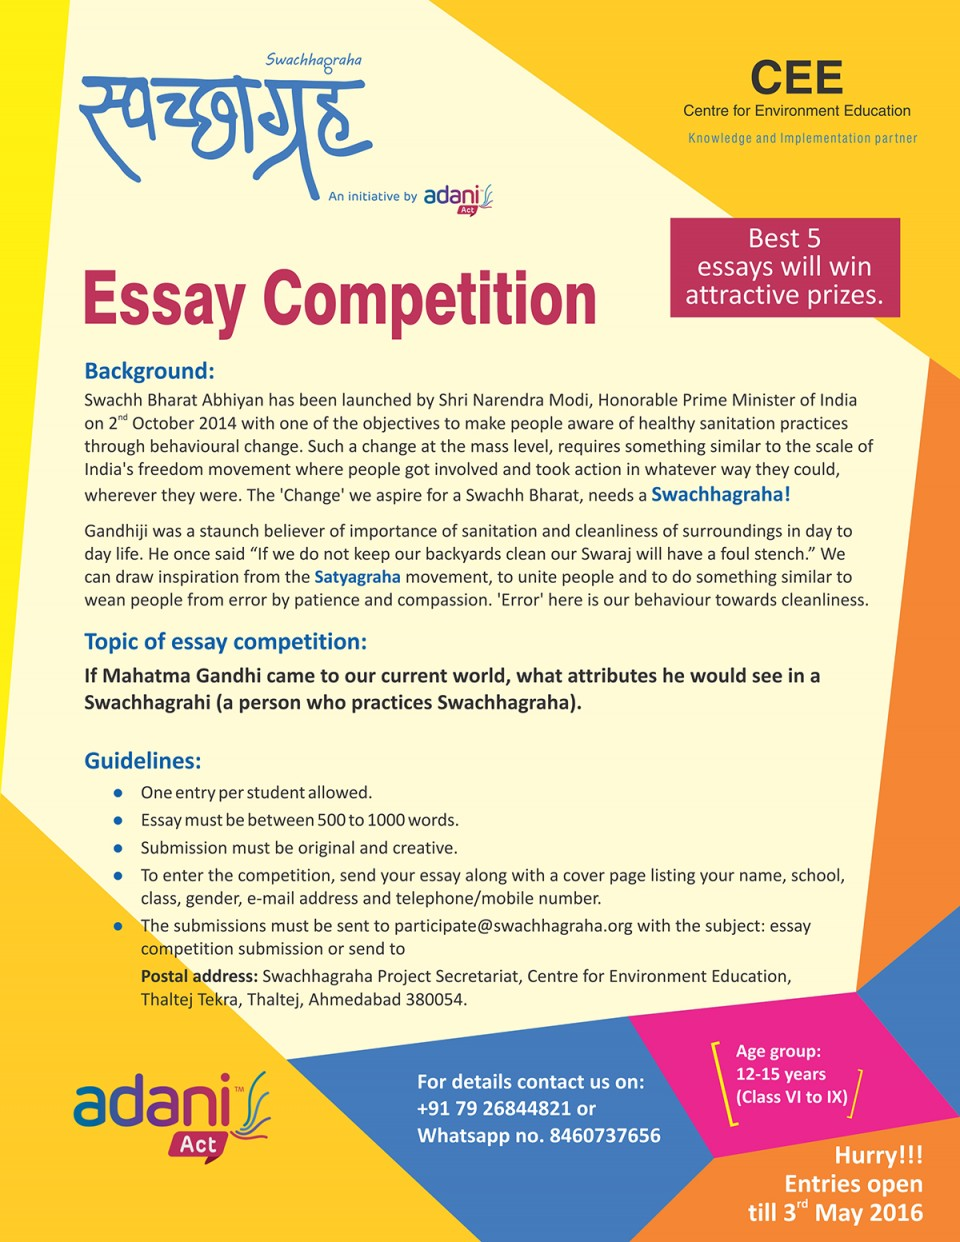 011 20180129171946essay20competition Essay About Cleanliness In School Phenomenal On Toilets Persuasive 960